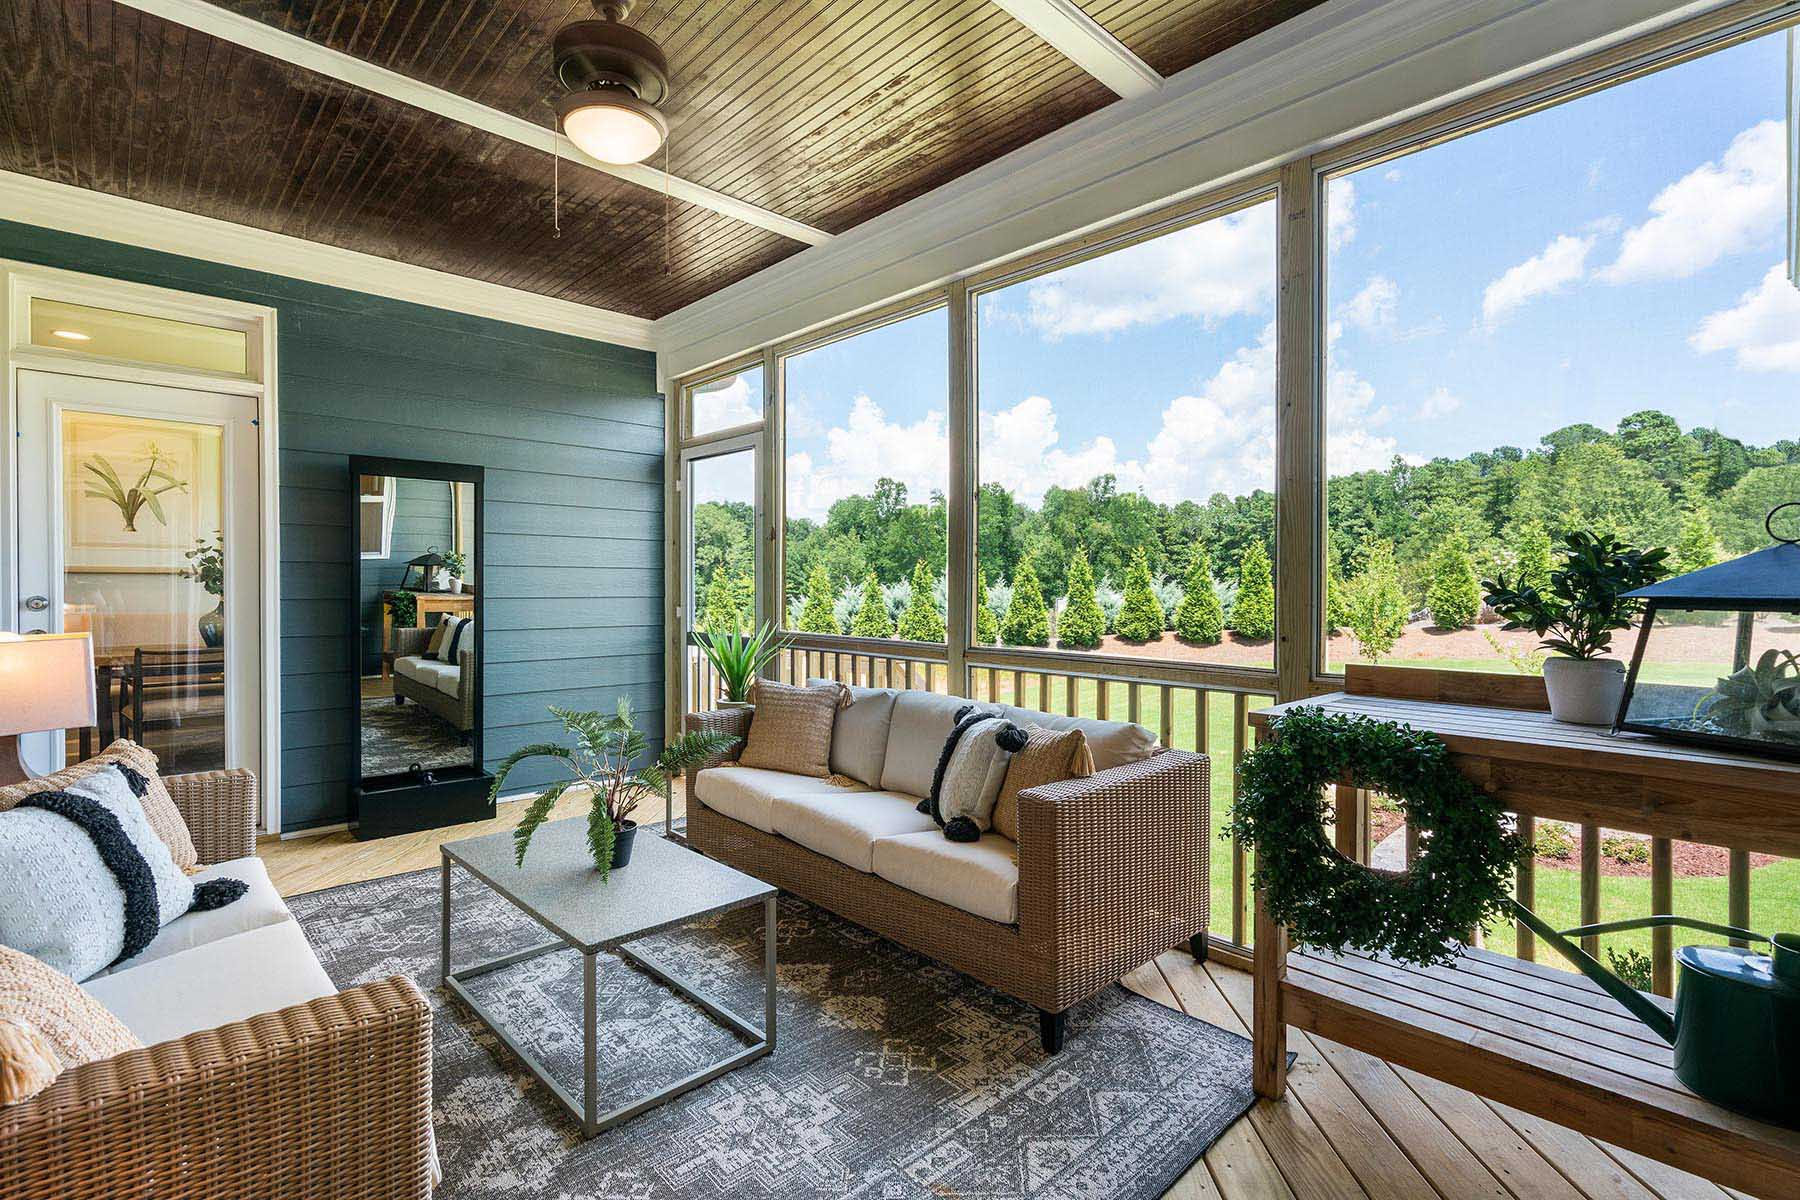 Larkin Plan Patio at Fairview Park in Cary North Carolina by Mattamy Homes